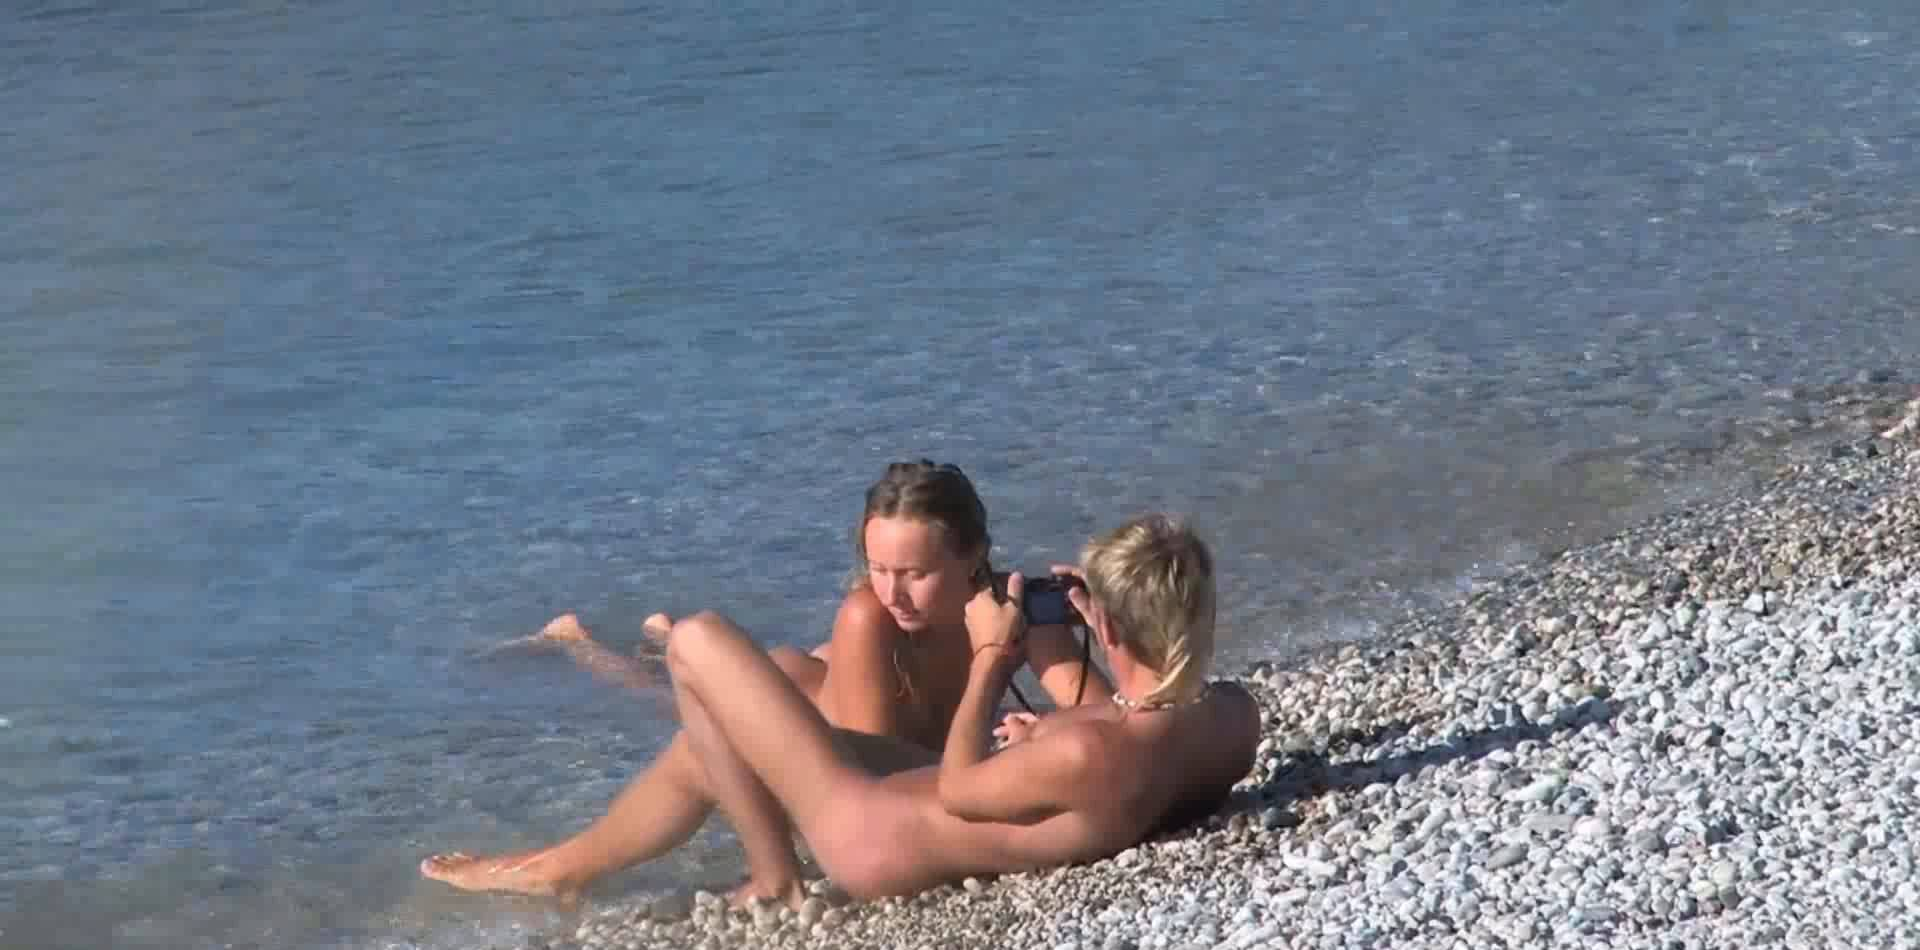 Candid Family Nudism 3 - 3